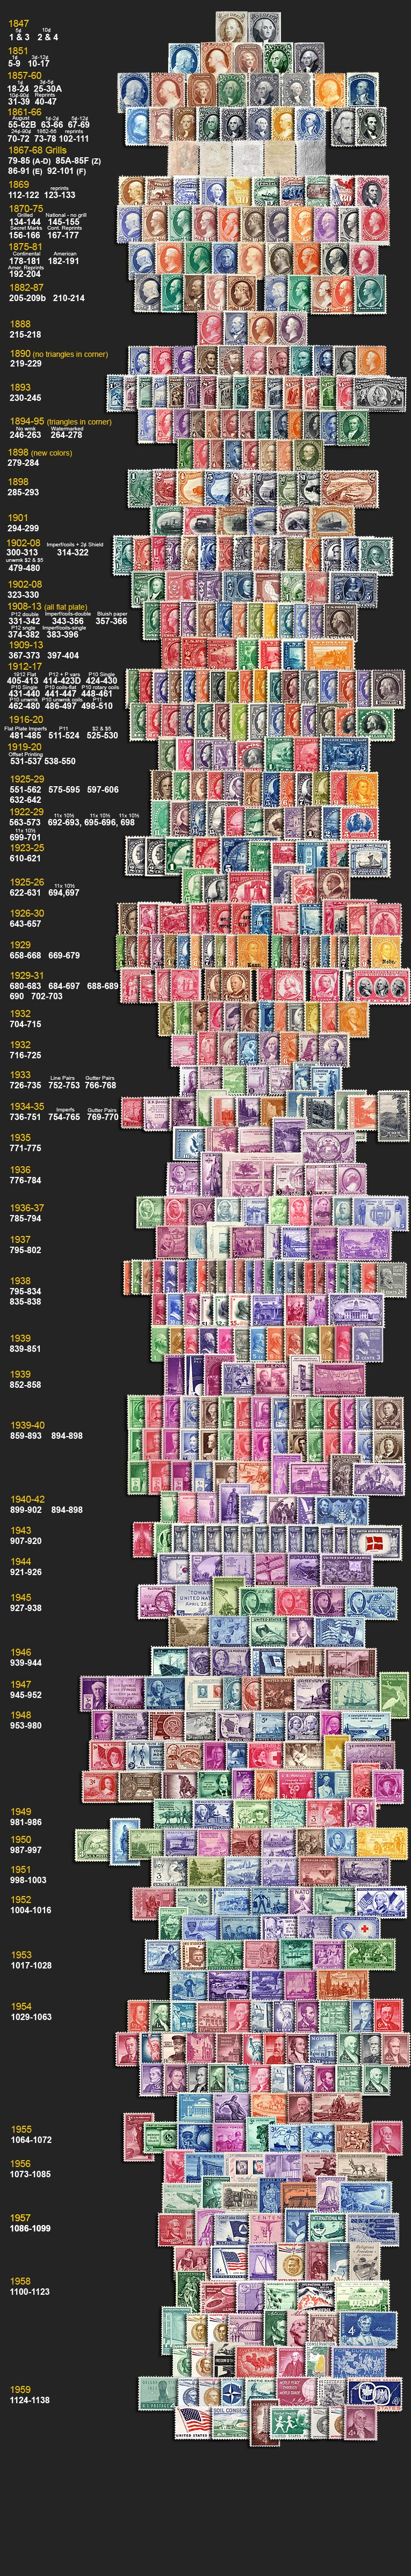 US stamp values